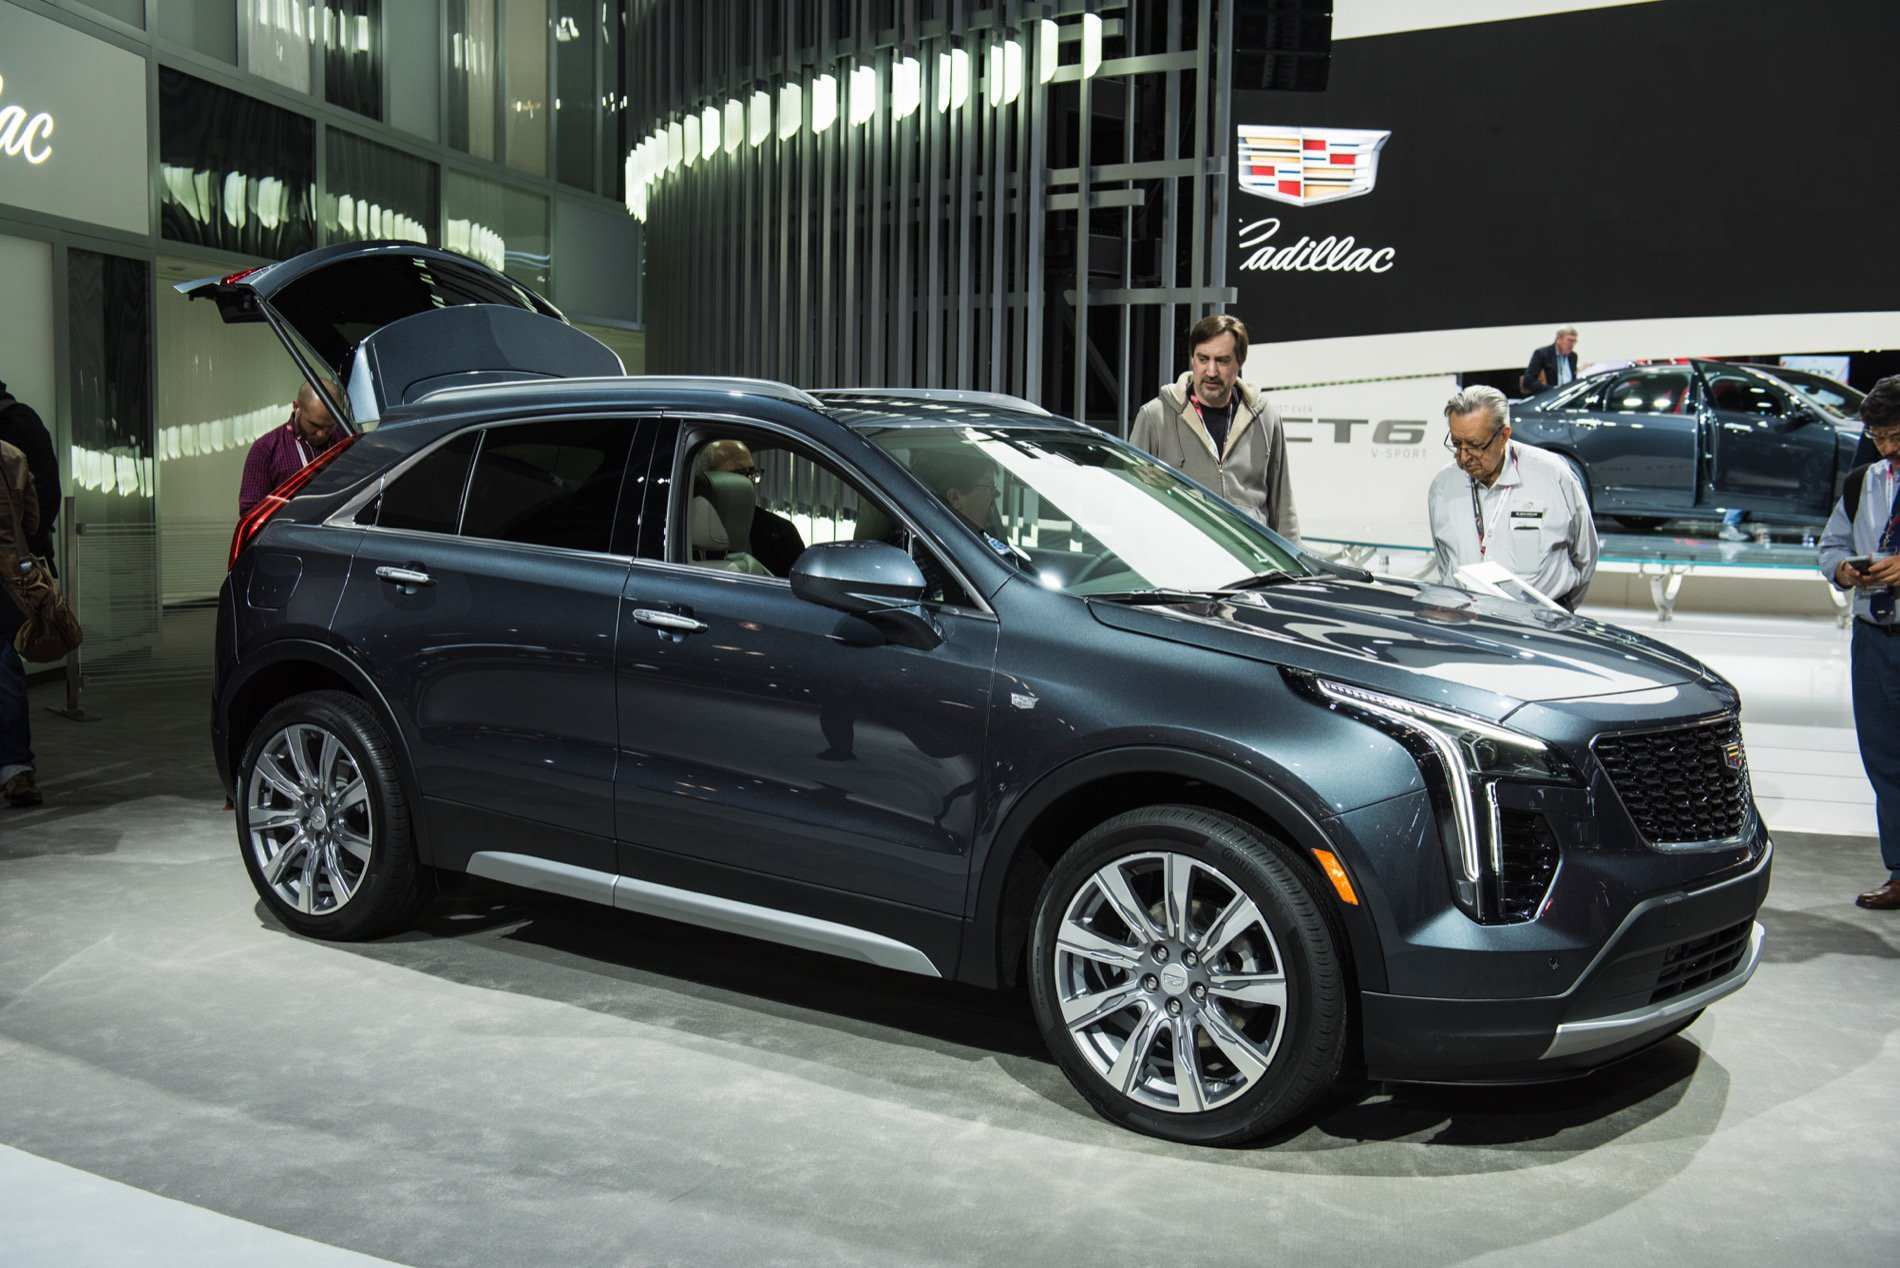 77 Gallery of New Cadillac 2019 Xt4 Price Ratings by New Cadillac 2019 Xt4 Price